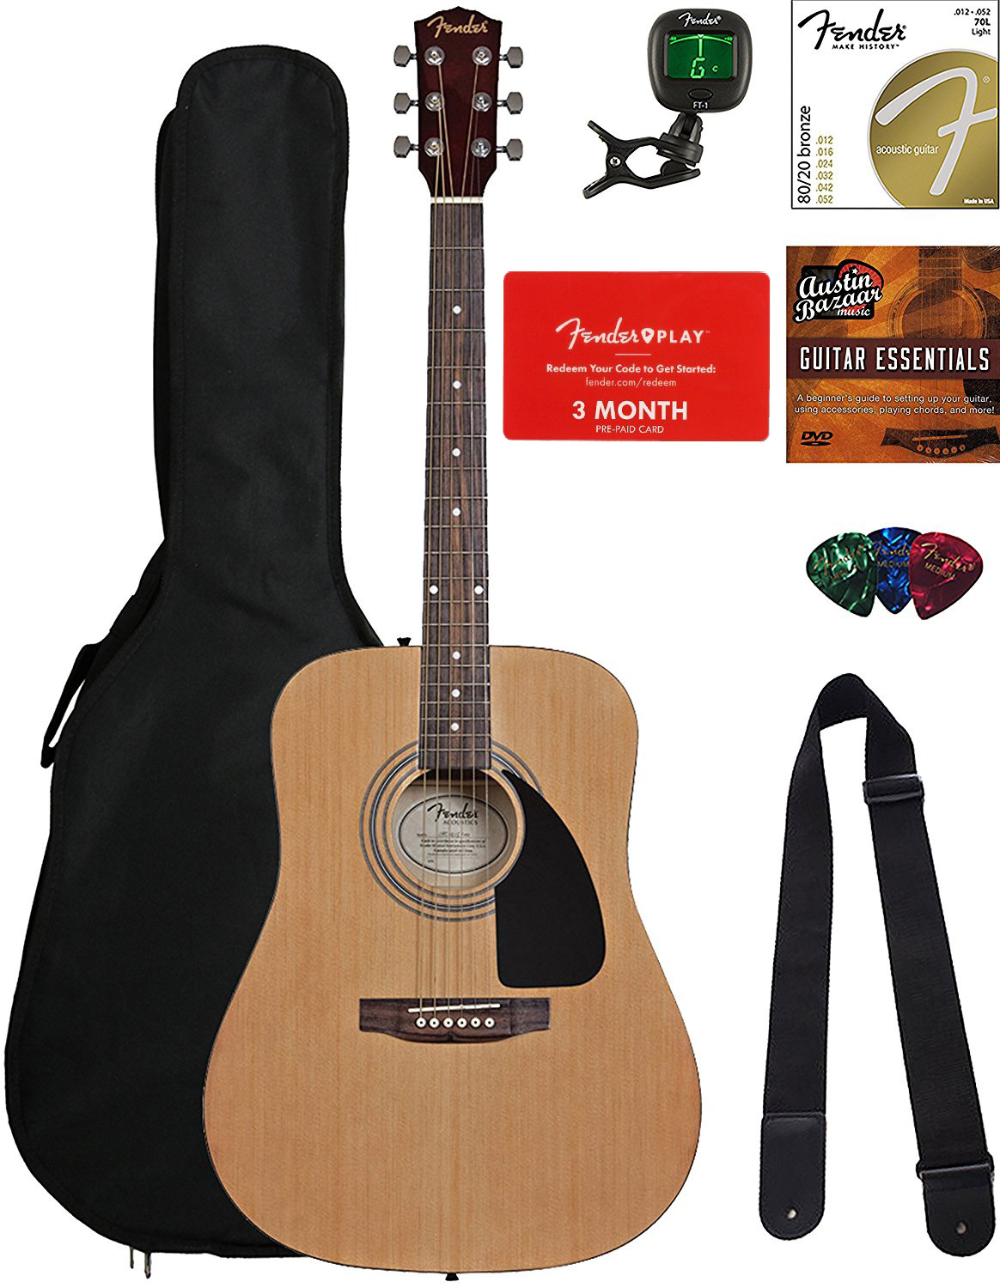 Fender Fa 115 Dreadnought Acoustic Guitar Natural Bundle With Fender Play Online Lessons Gig Bag Tuner Strings Strap Picks And Austin Bazaar Instruction In 2021 Fender Acoustic Guitar Acoustic Guitar Guitar Tuners